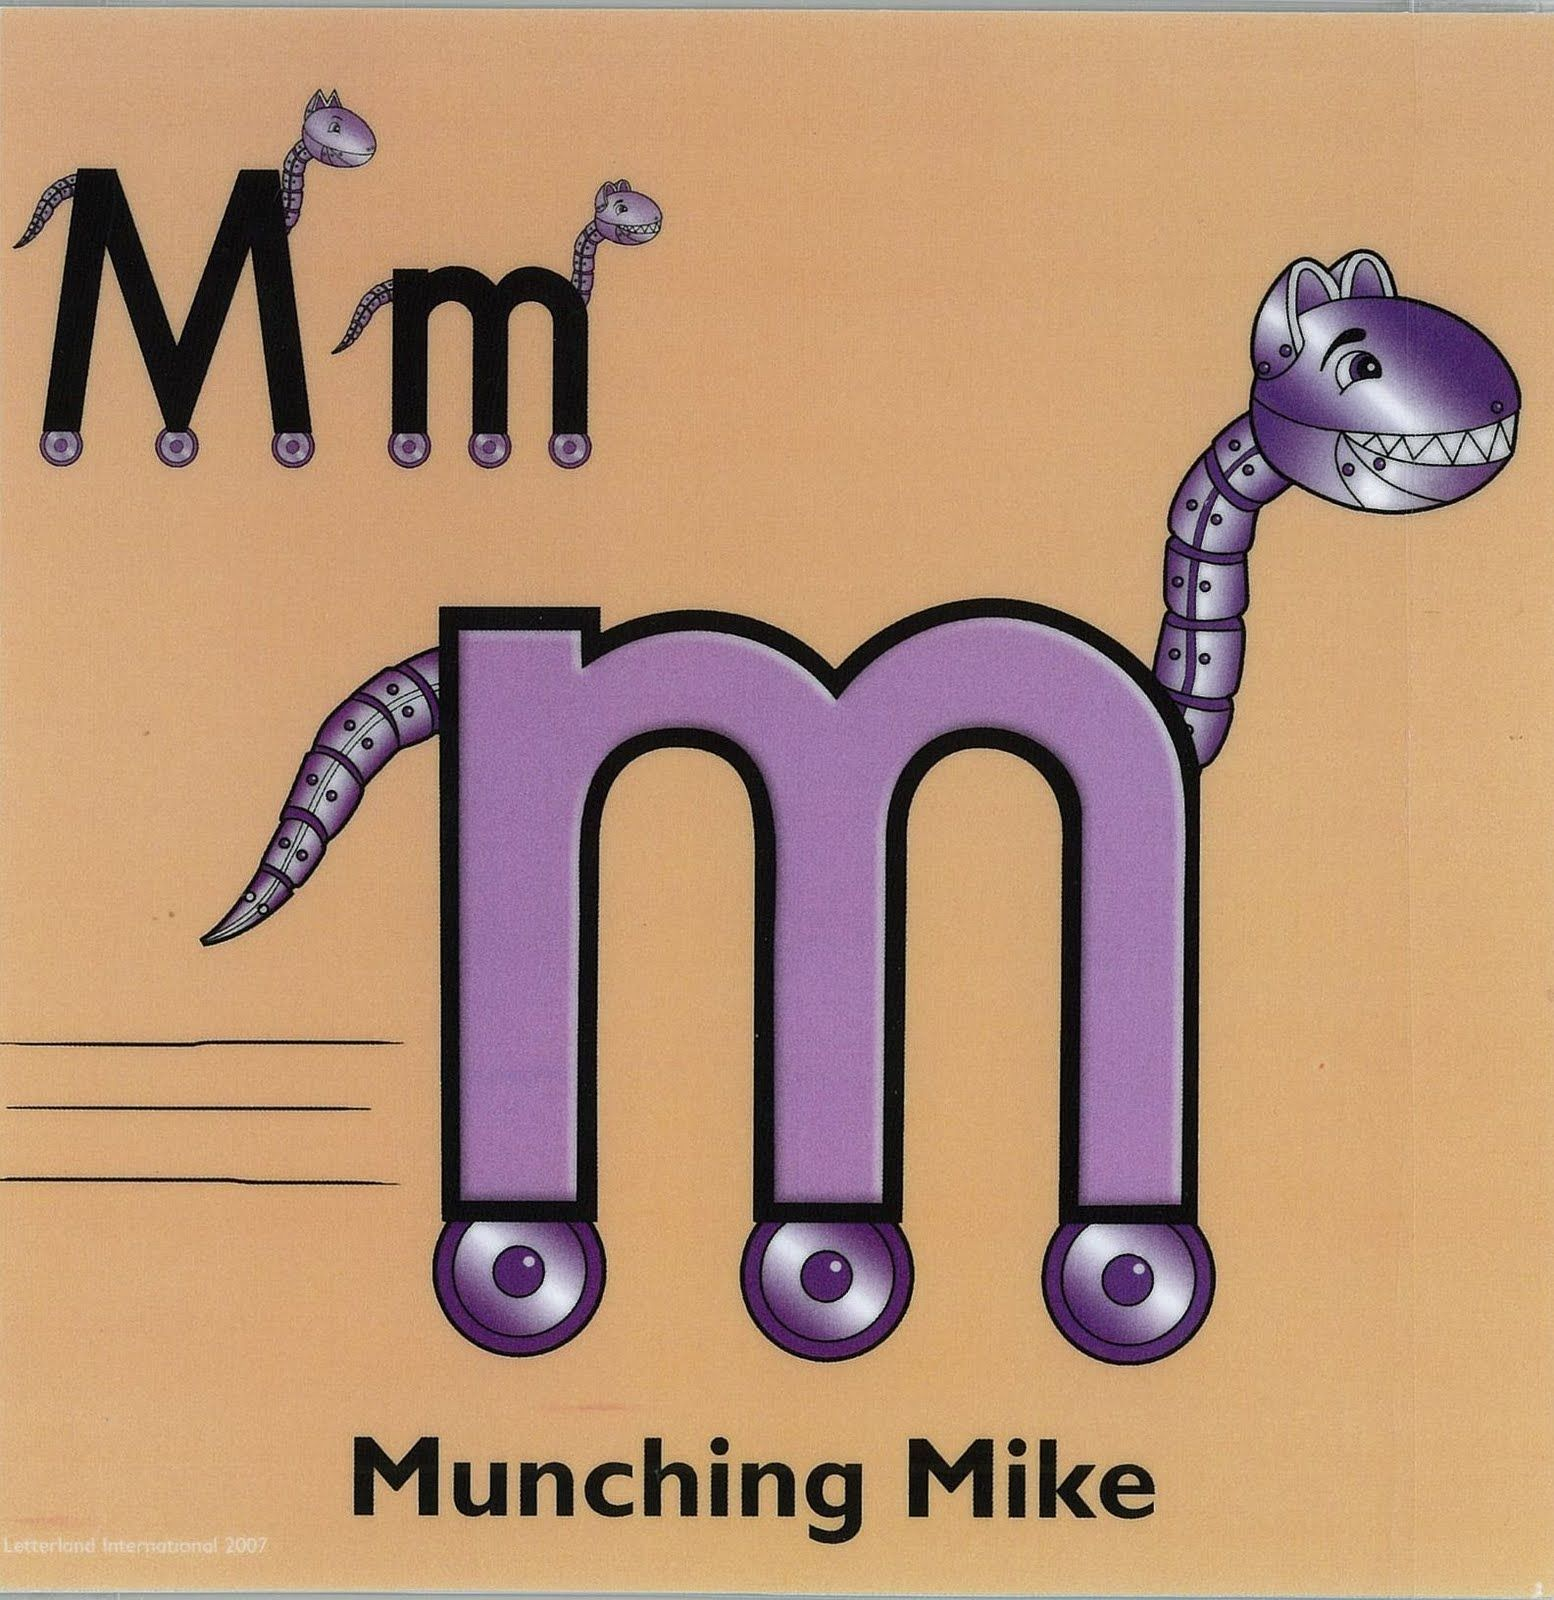 Letterland Munching Mike